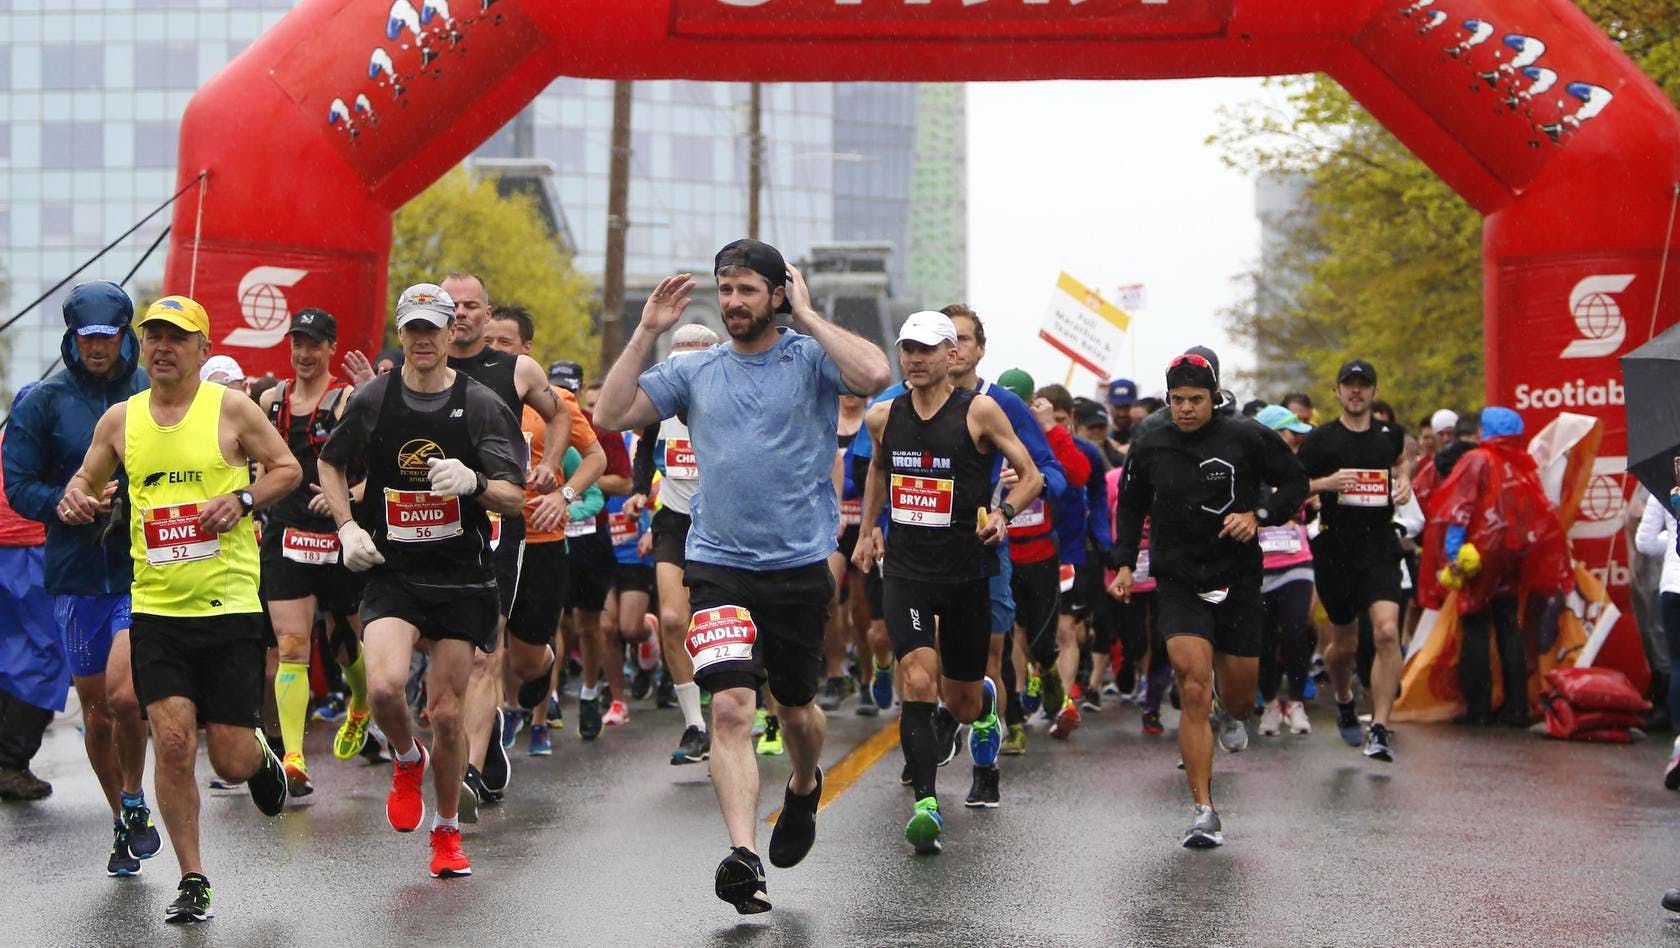 Runners take off at the start of the full marathon at the Scotiabank Blue Nose Marathon in Halifax on May 20, 2018. - Tim Krochak / The Chronicle Herald